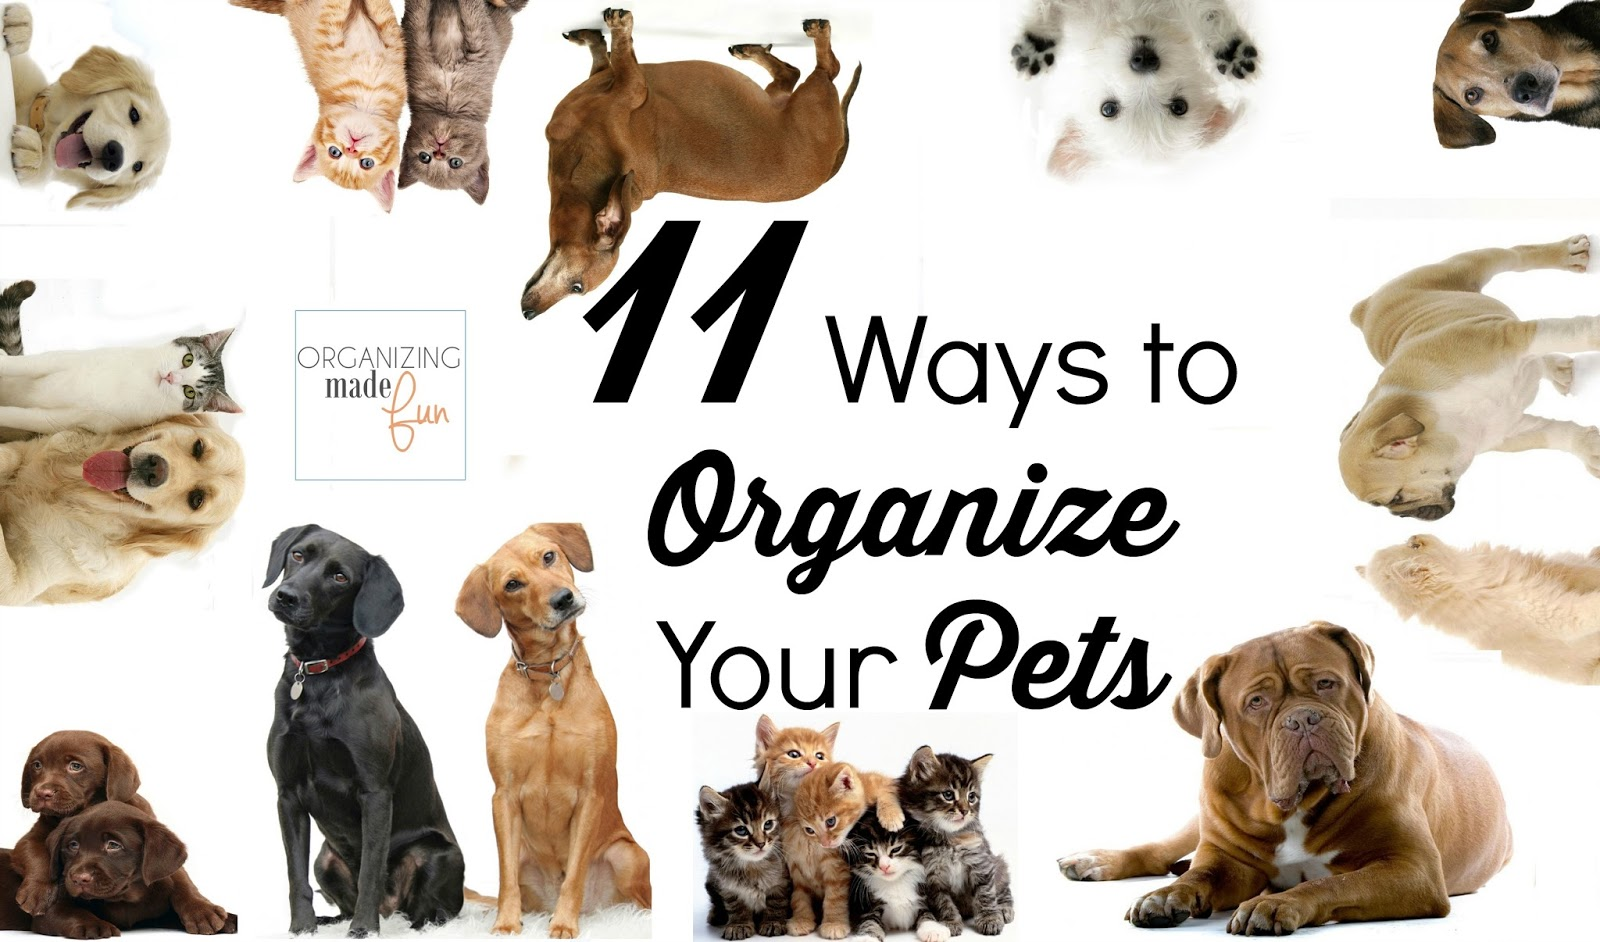 How To Organize A Small Bedroom With A Lot Of Stuff 11 Ways To Organize Your Pet Organizing Made Fun 11